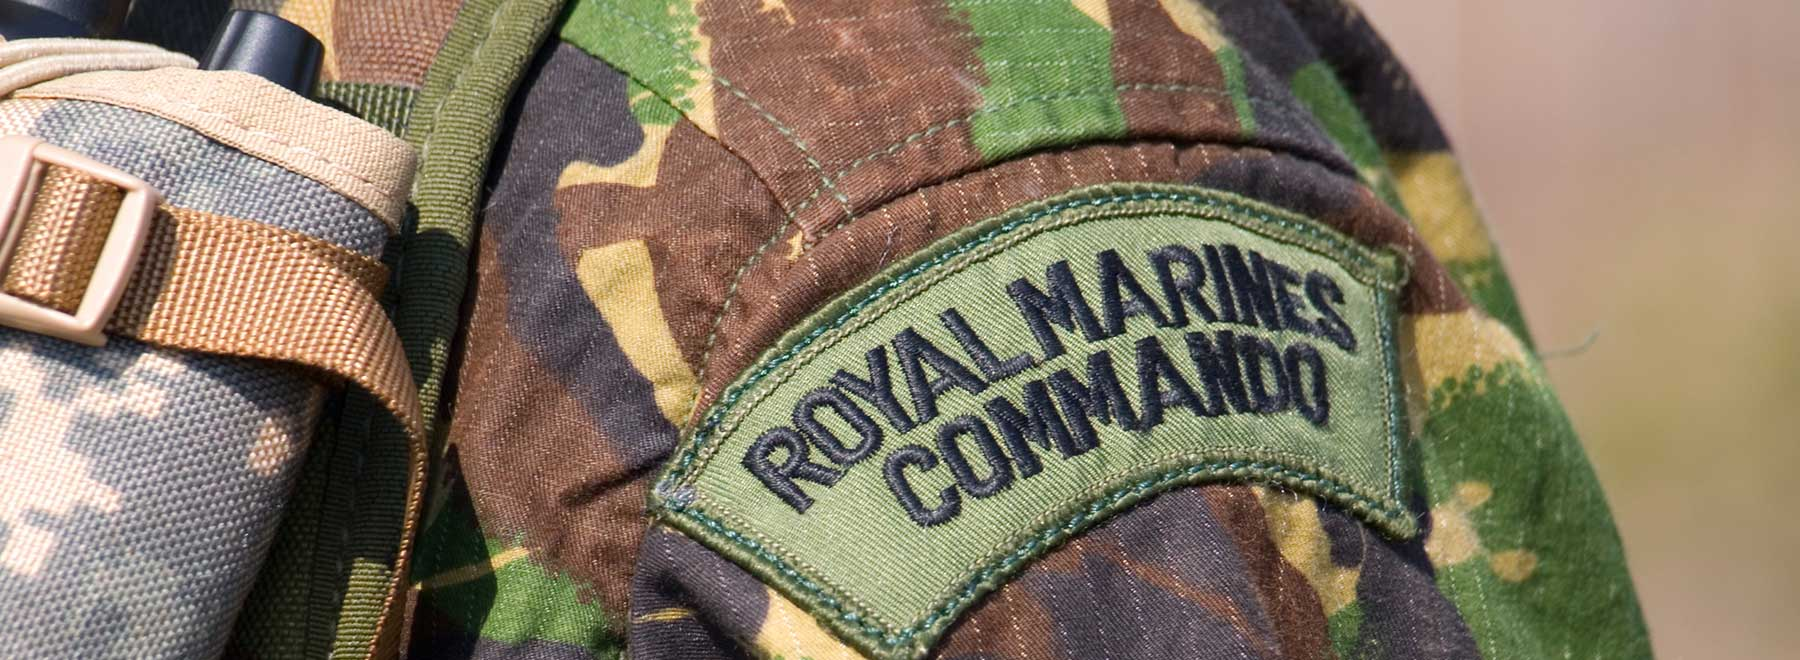 Forced into Marine Reserves? Army Alternative?